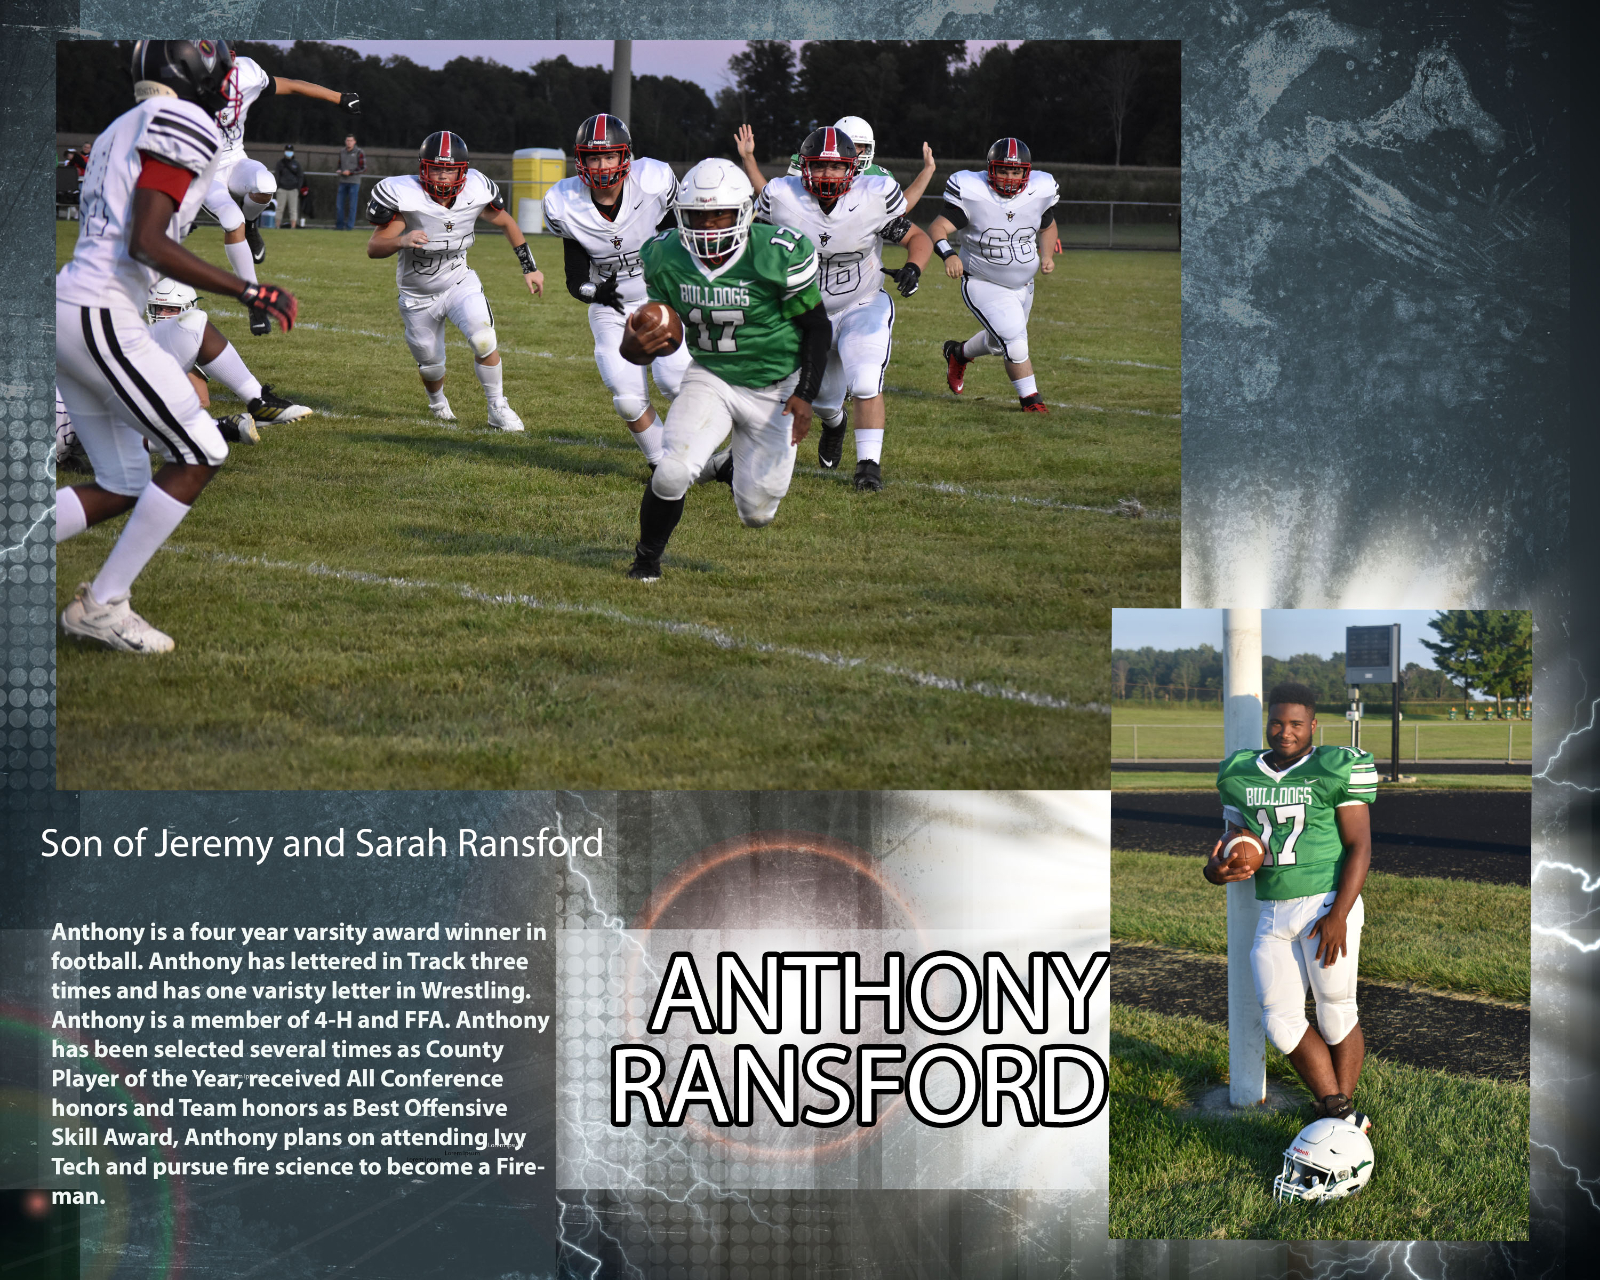 Senior Football Player – Anthony Ransford